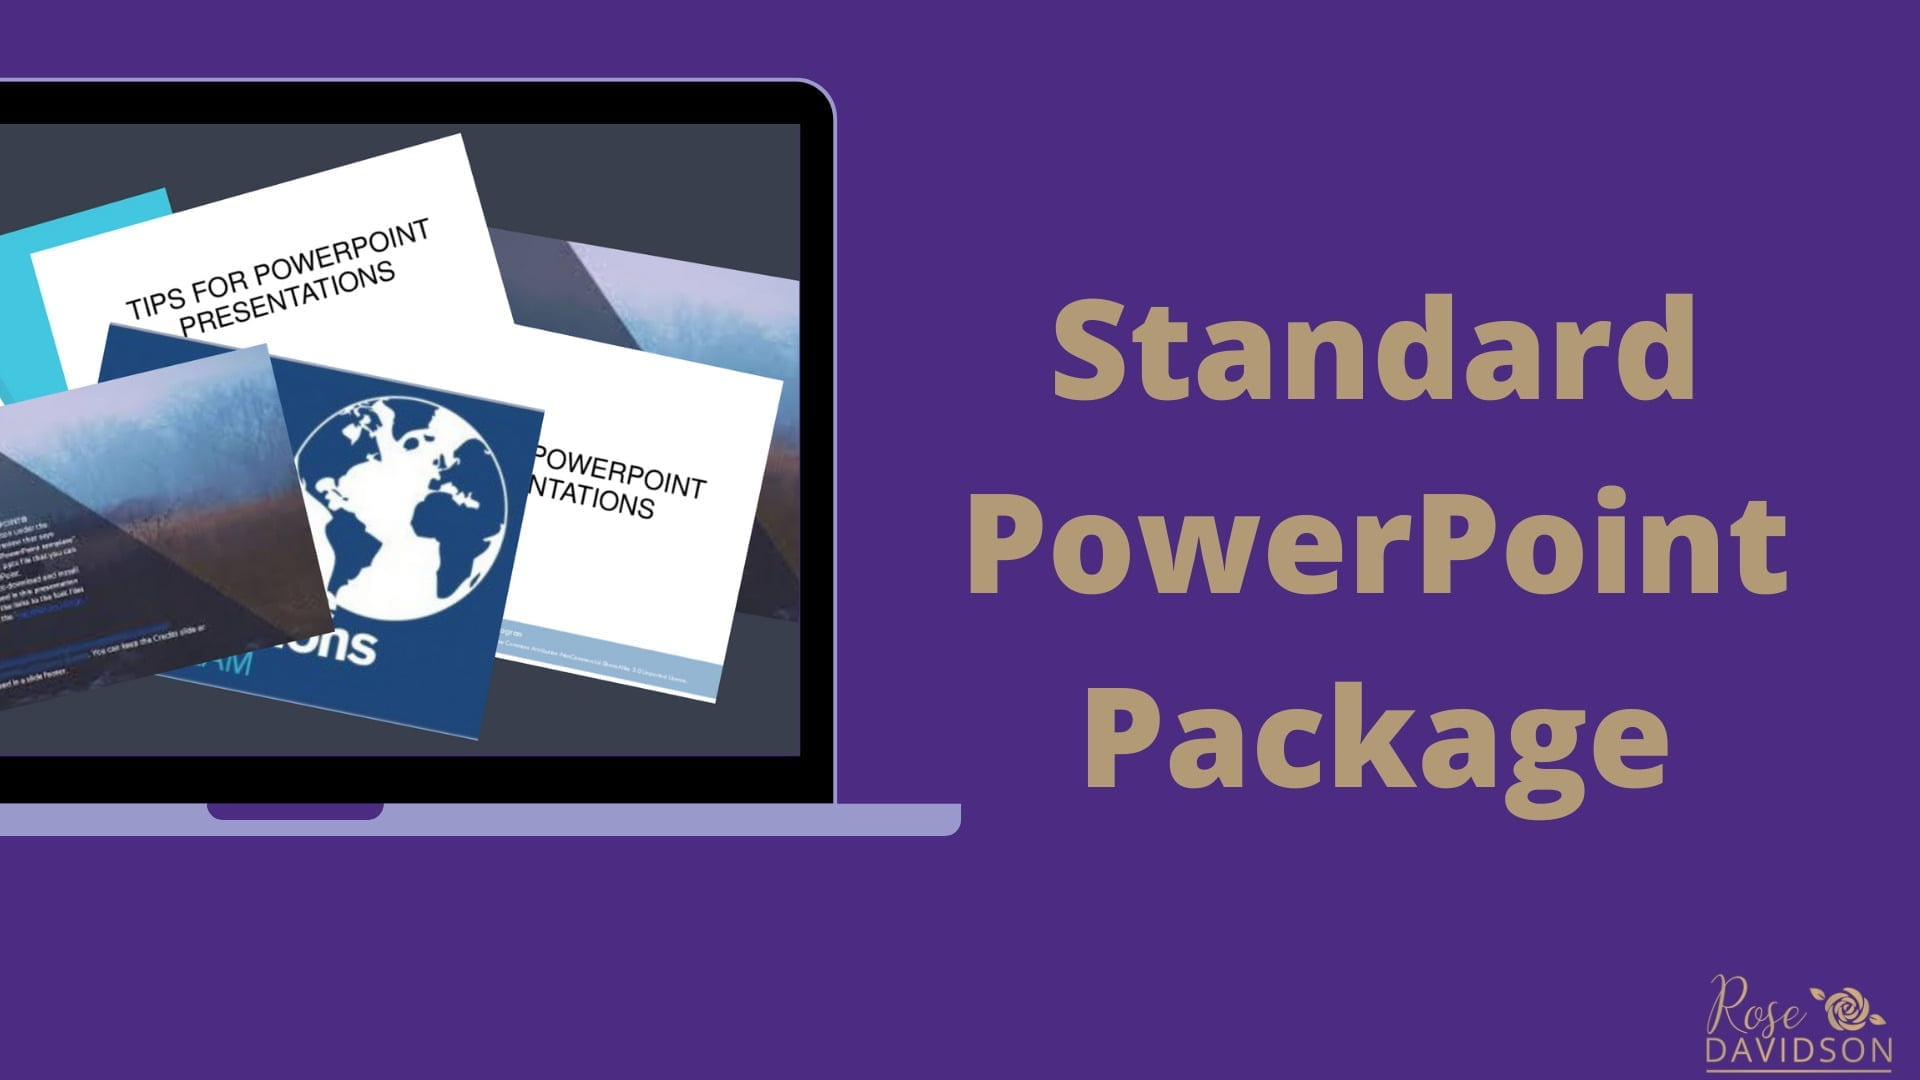 Package, Packages, Rose Davidson, Small Business, Entrepreneurs, Virtual Assistant, Office Manager, Social Media, PowerPoint, Presentations,  Workshops, Events, Video, Speakers, Hybrid Speaker Support, Helping Speakers Transition to an Online Business